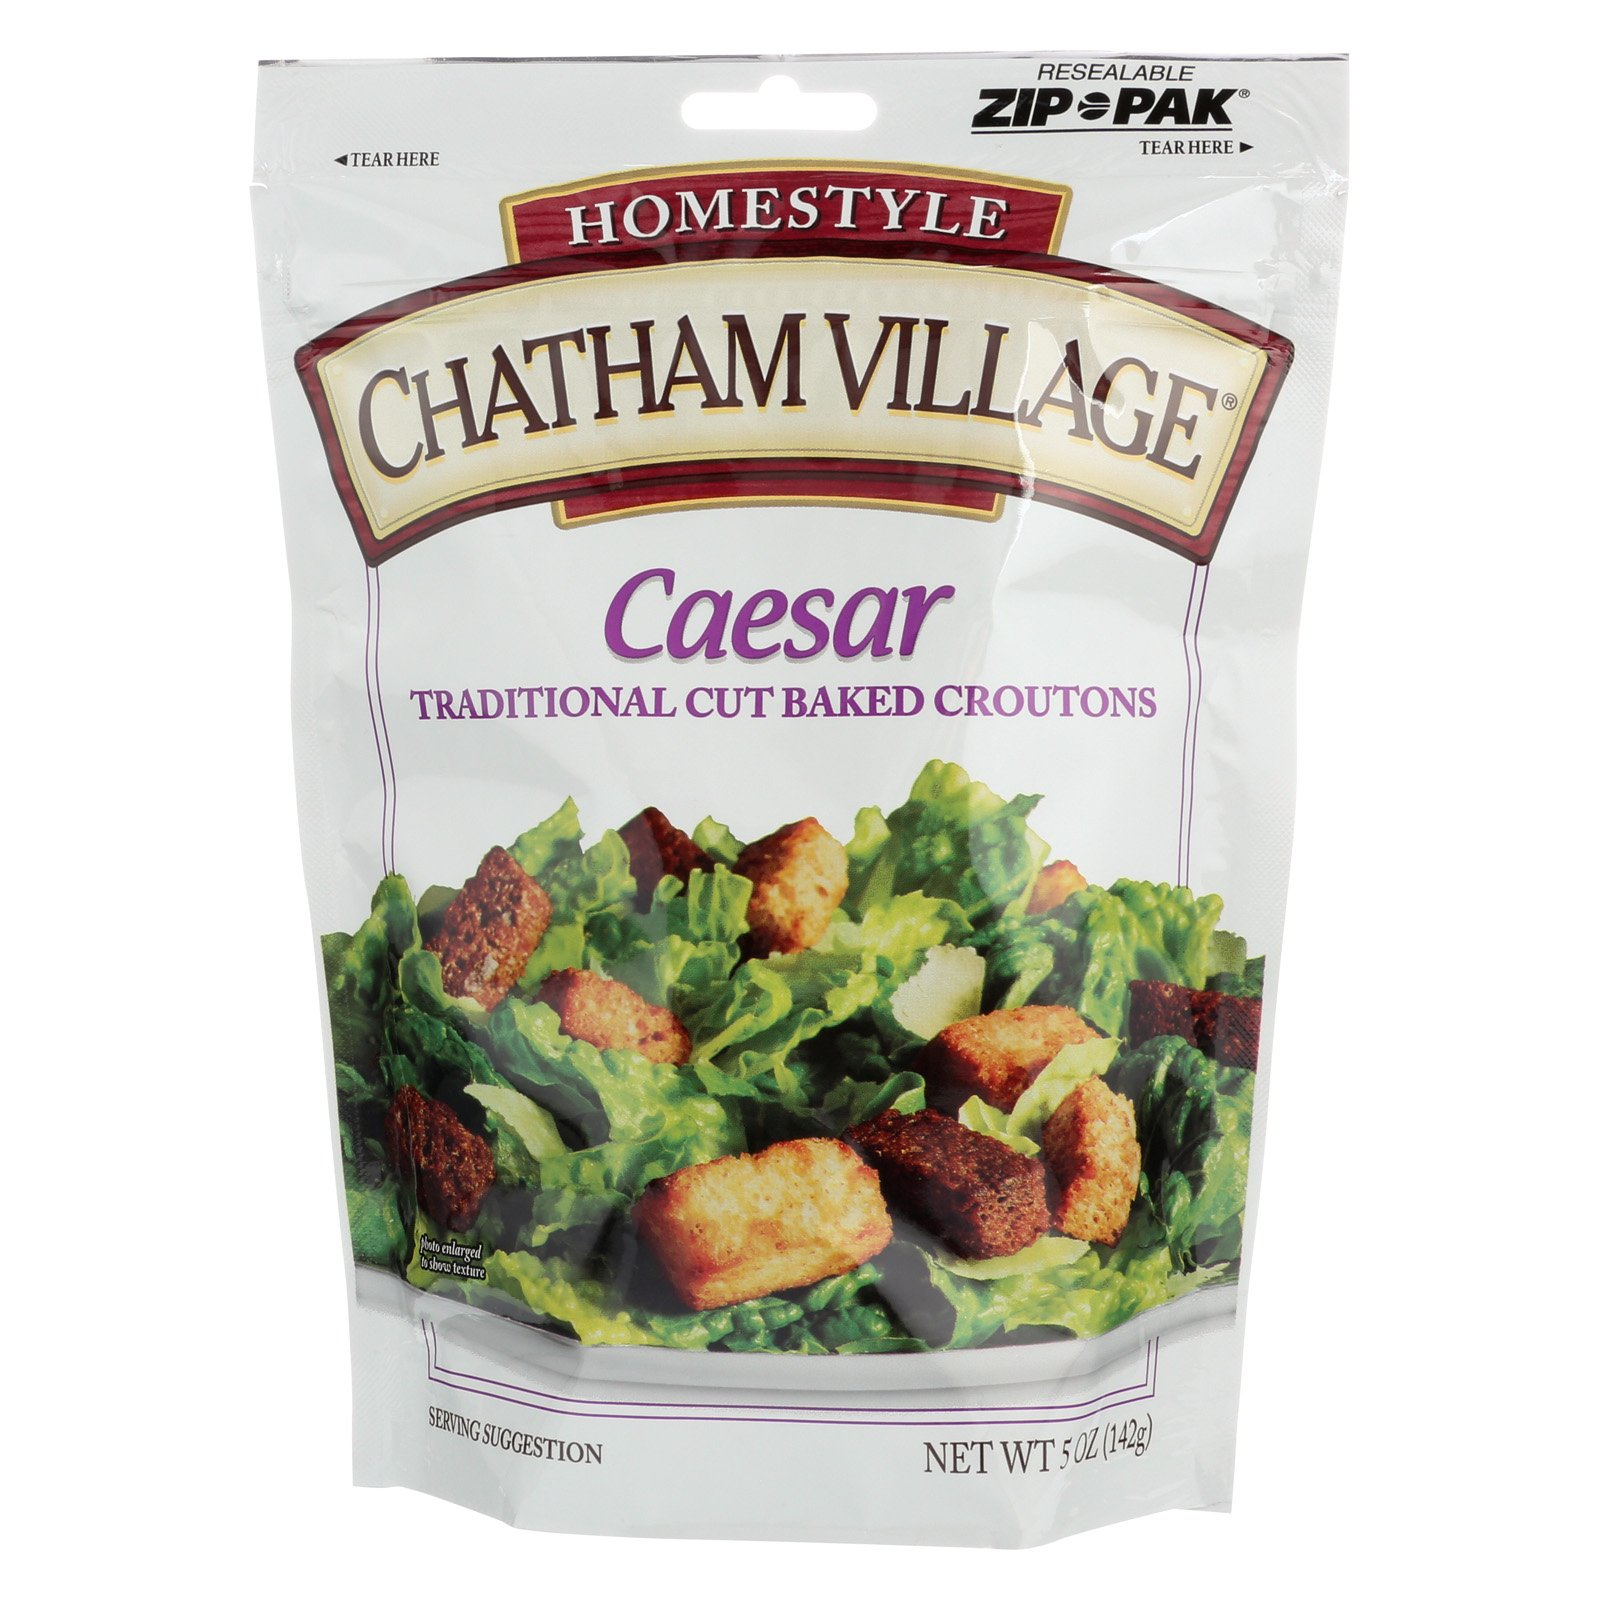 Chatham Village Traditional Cut Croutons - Caesar - Case of 12-5 oz.